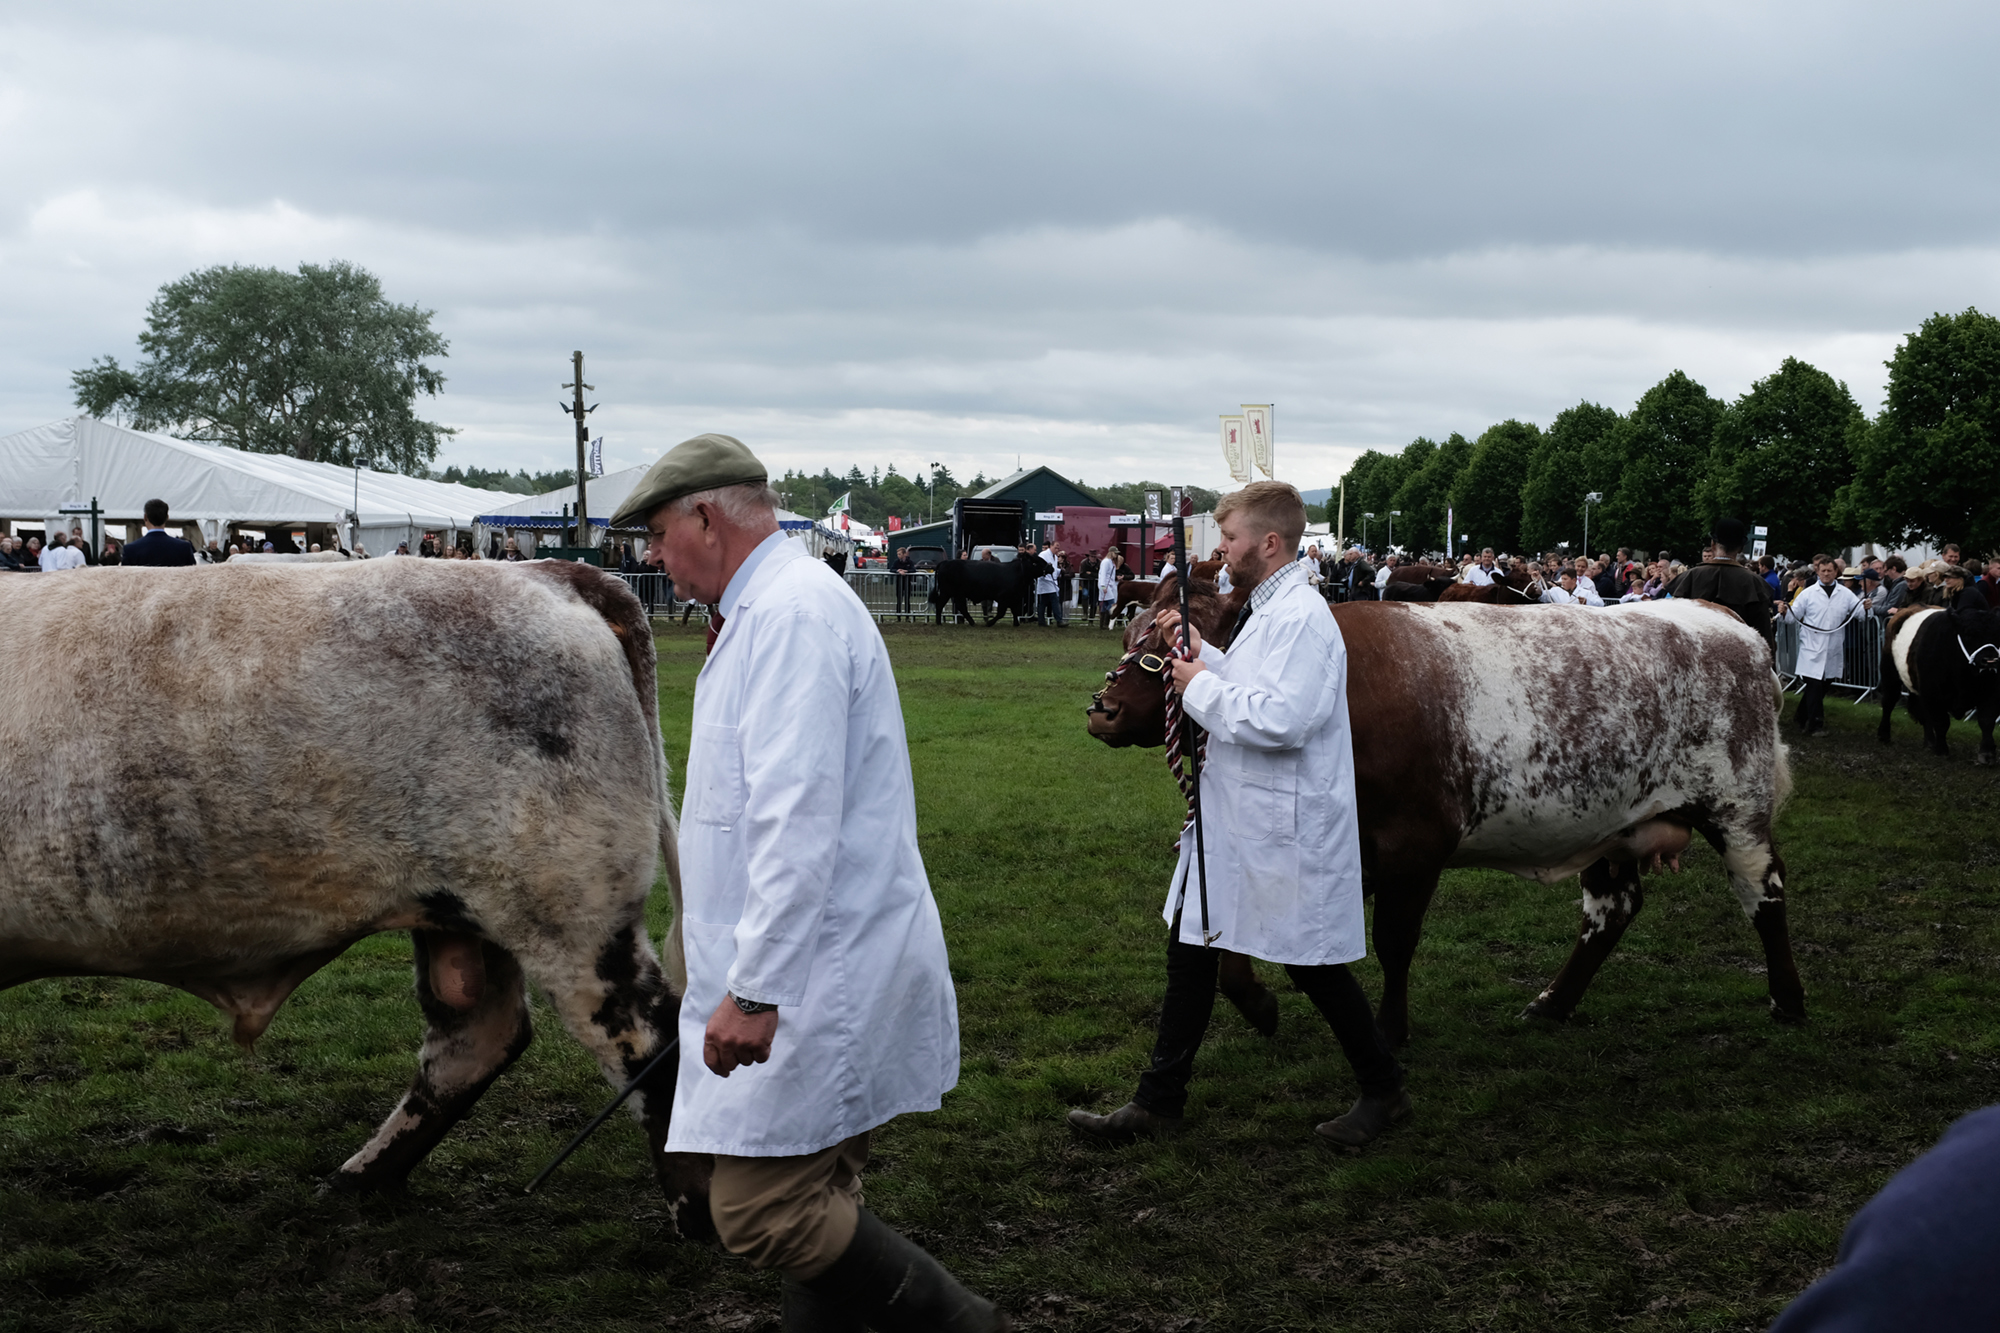 Photo of 2 men in white coats walking their cows